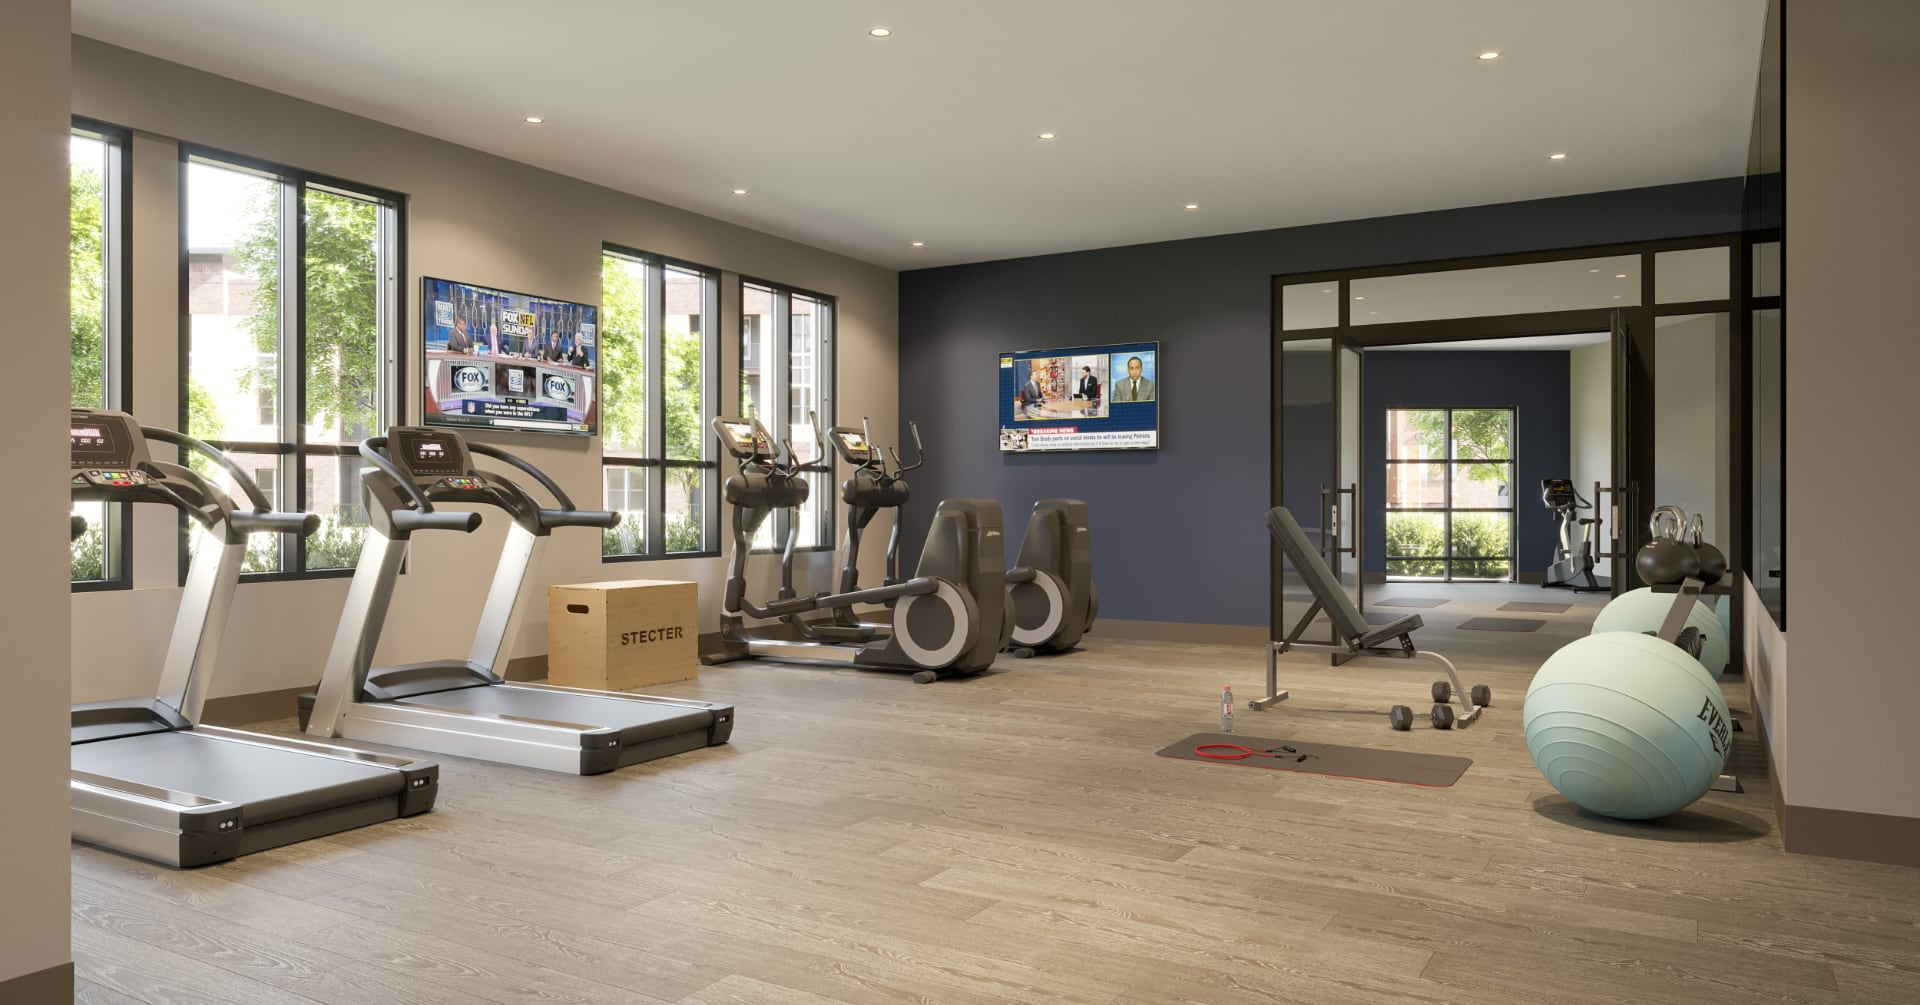 Pullman Pointe Fitness Center Gallery